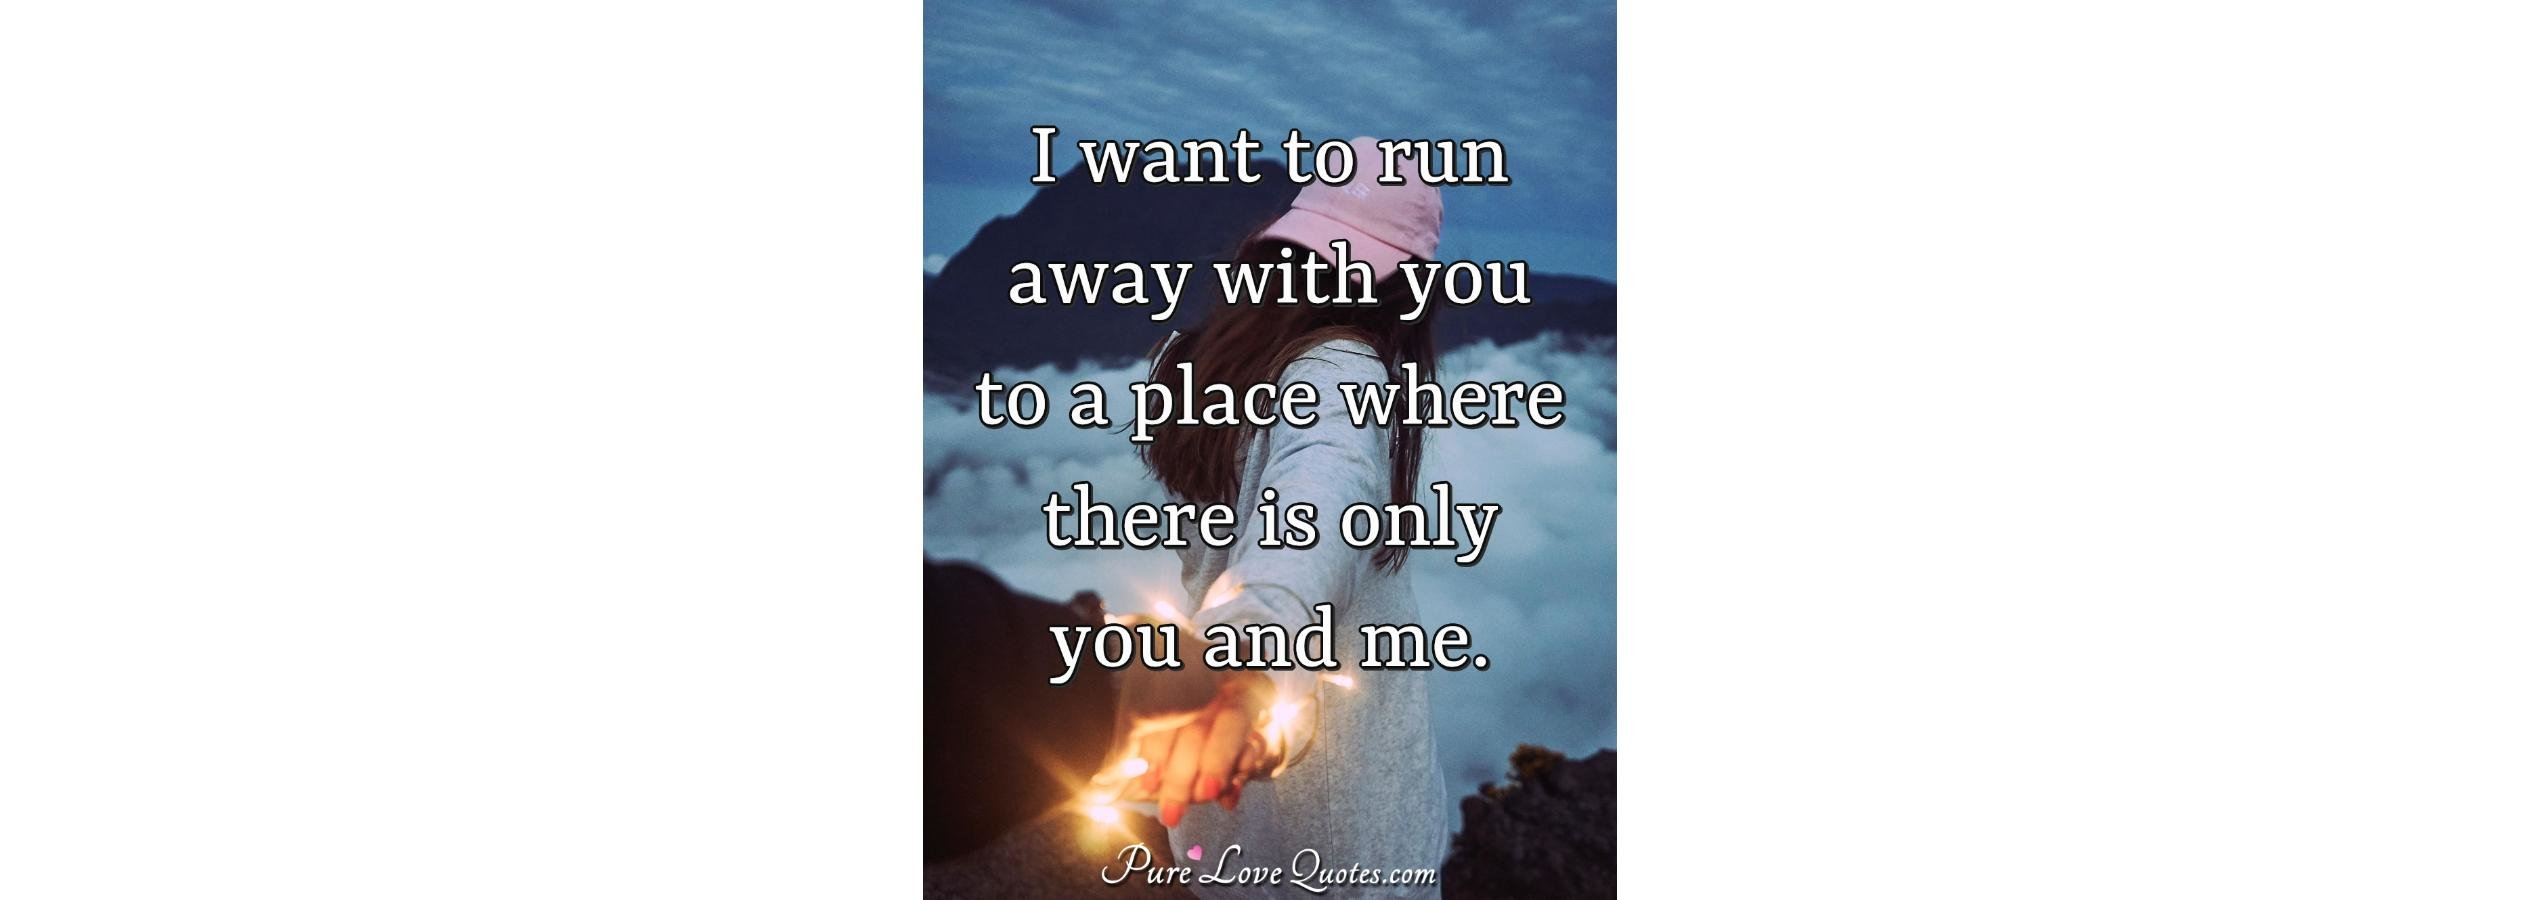 I Want To Run Away With You Where There Is Only You And